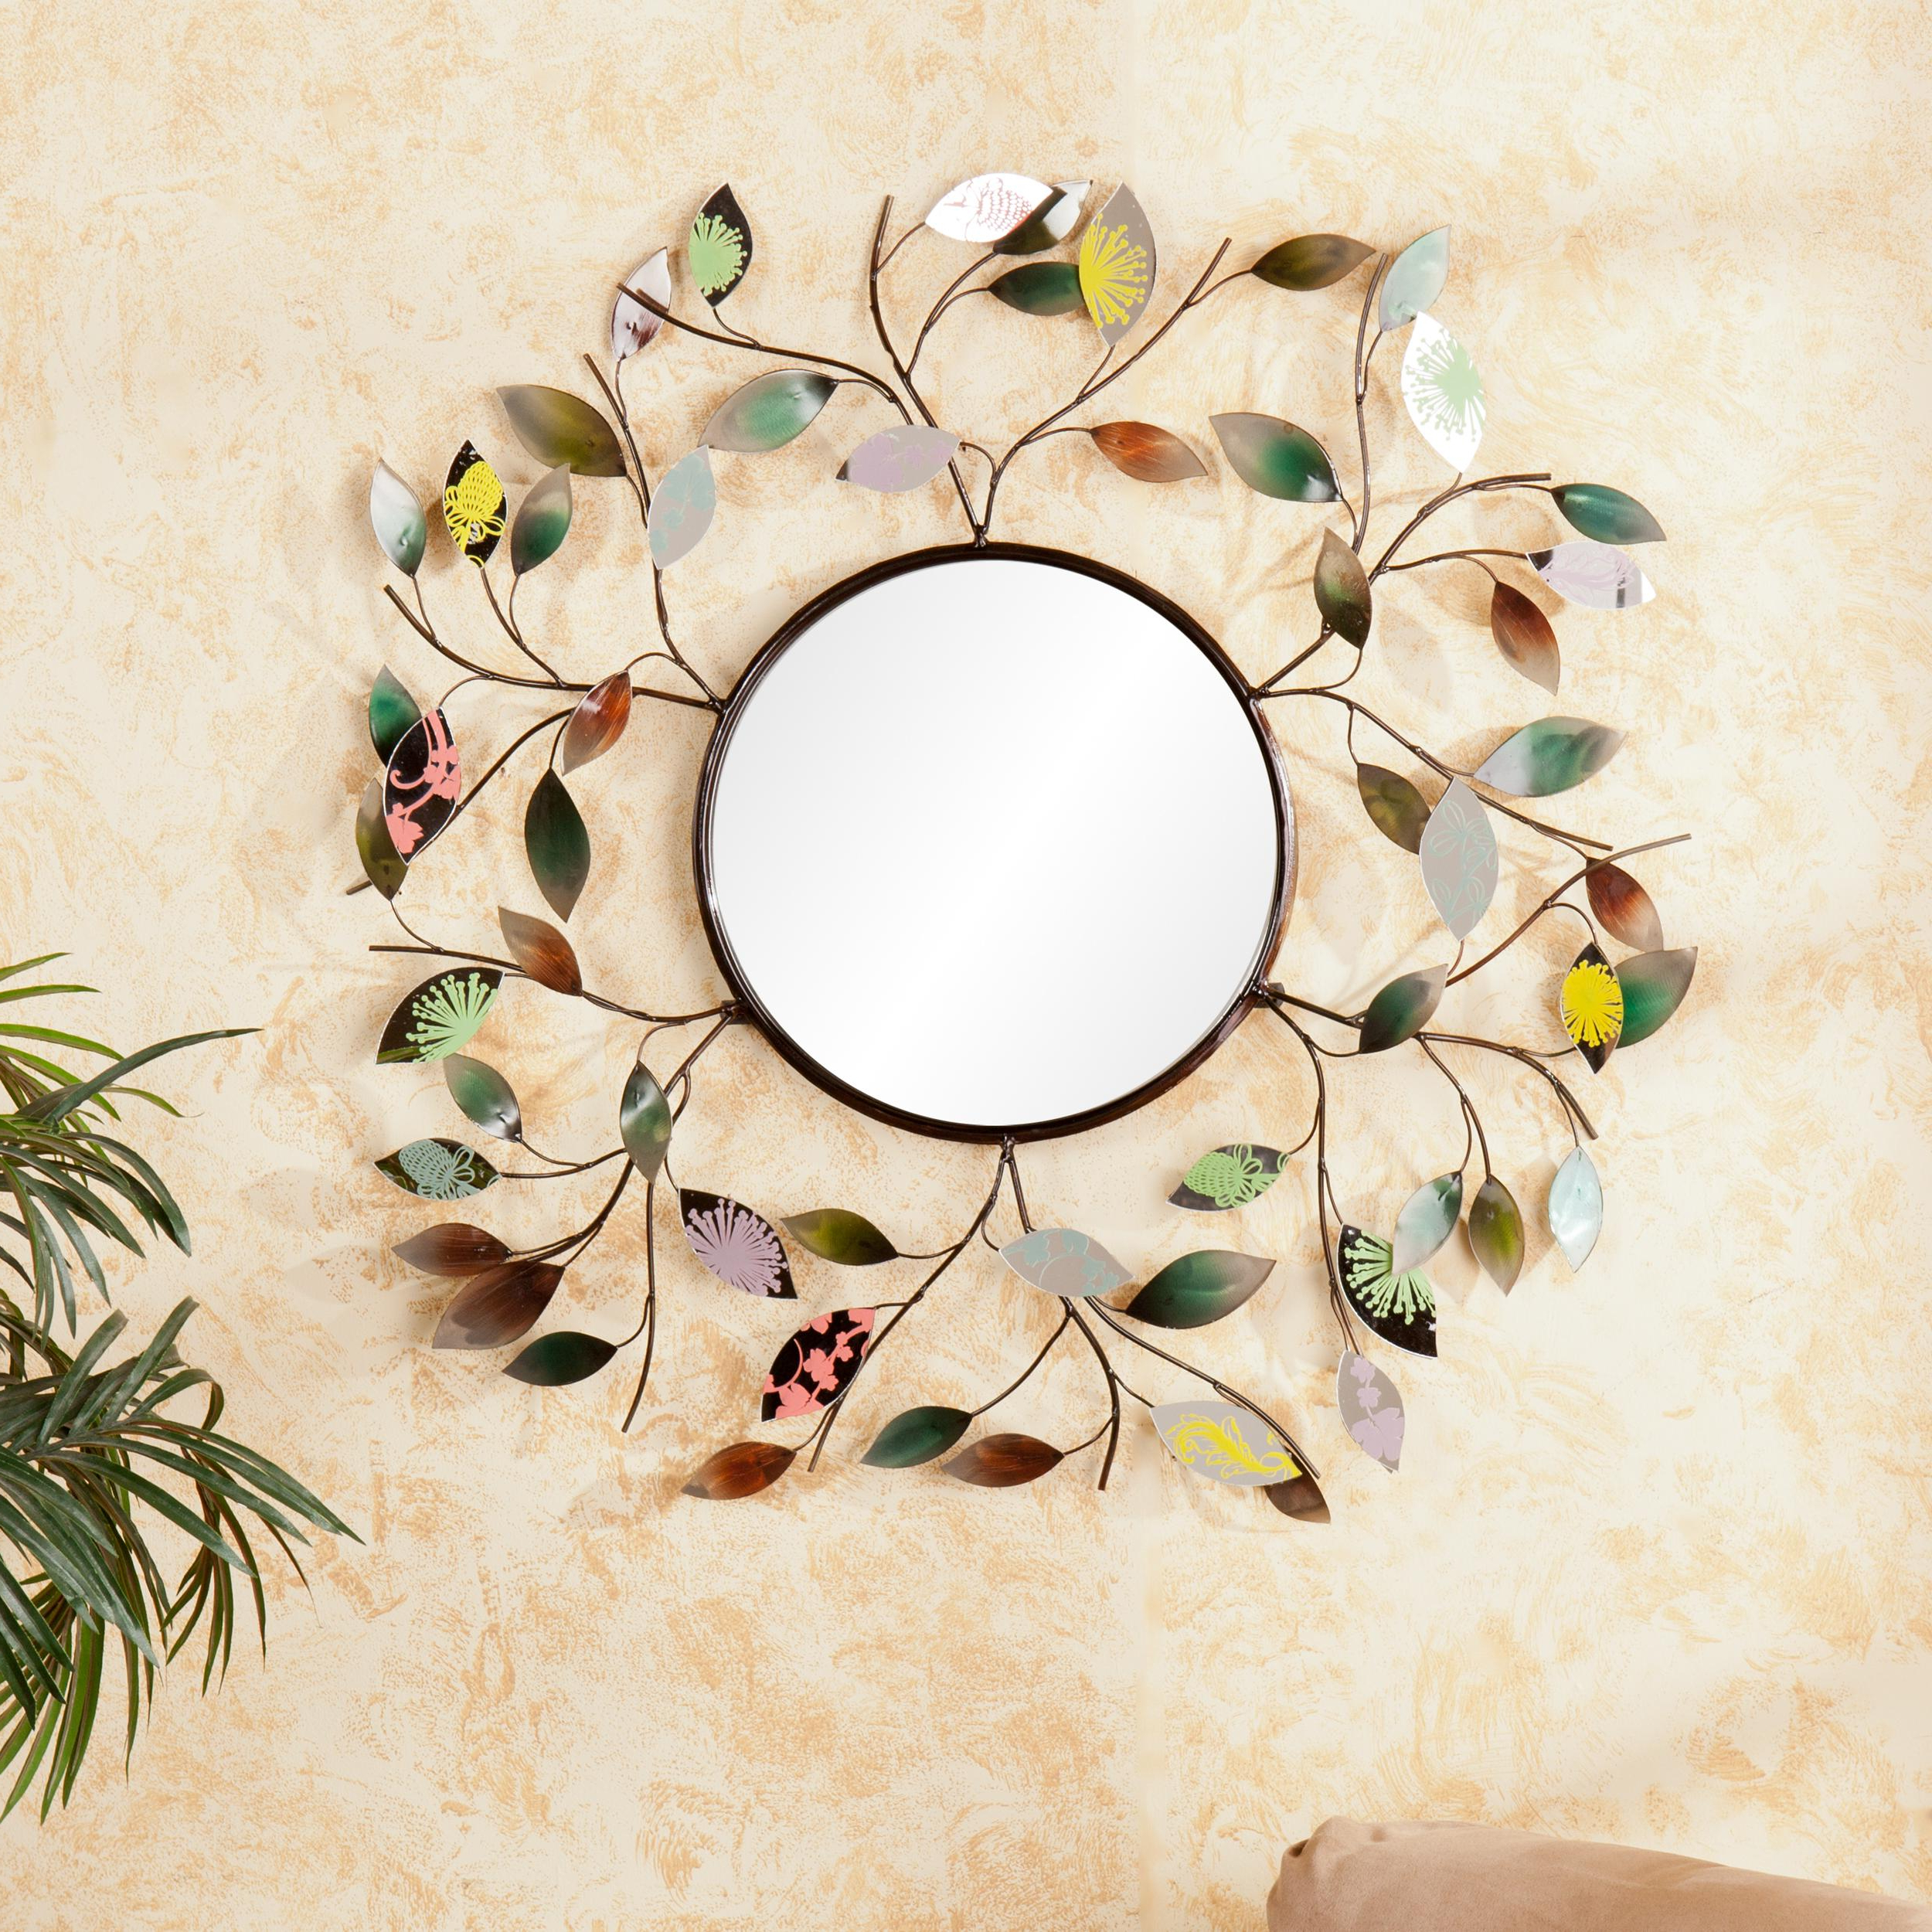 2020 Decorative Metallic Leaf Wall Mirror – 3d Leaf Hanging Art – Multicolored Eclectic Style With Decorative Cheap Wall Mirrors (View 13 of 20)